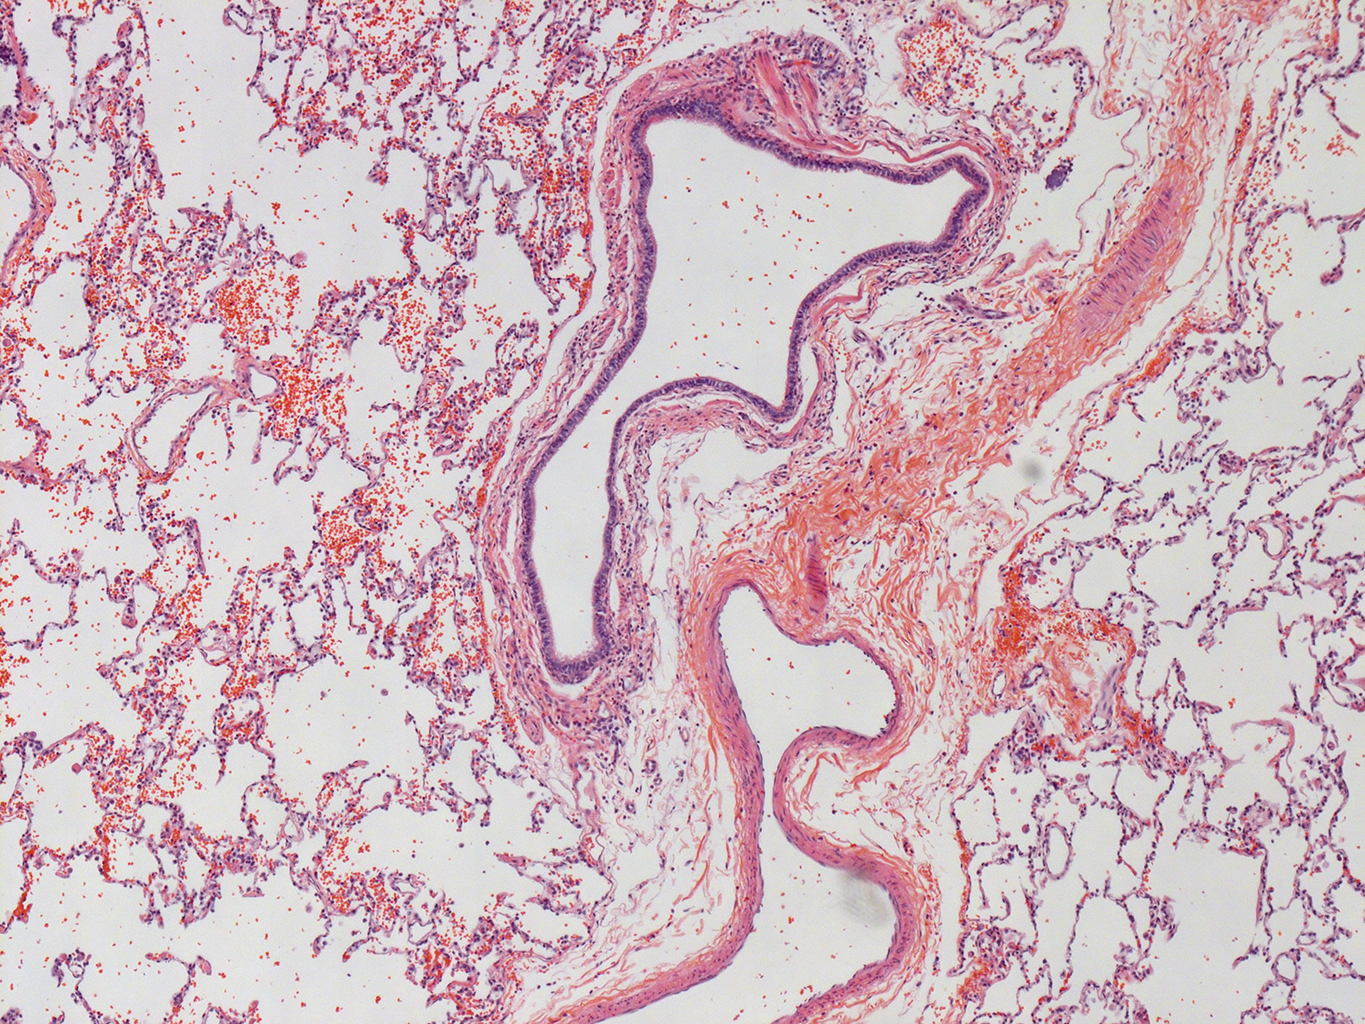 H&E Staining of 29 Year-Old Human Donor D175-10D2.17